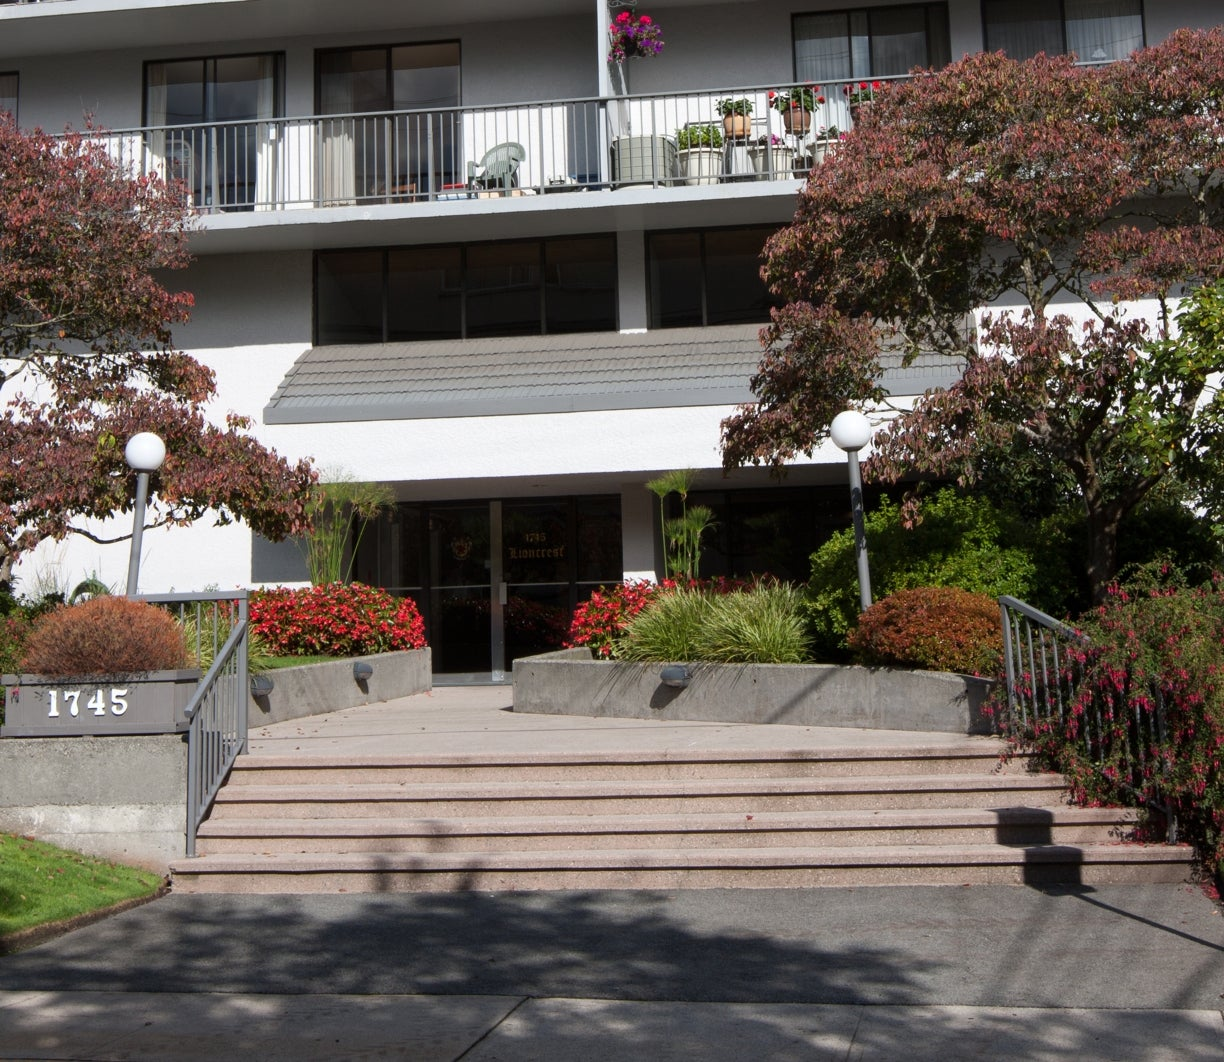 102 1745 ESQUIMALT AVENUE - Ambleside Apartment/Condo for sale, 1 Bedroom (R2115685) #1